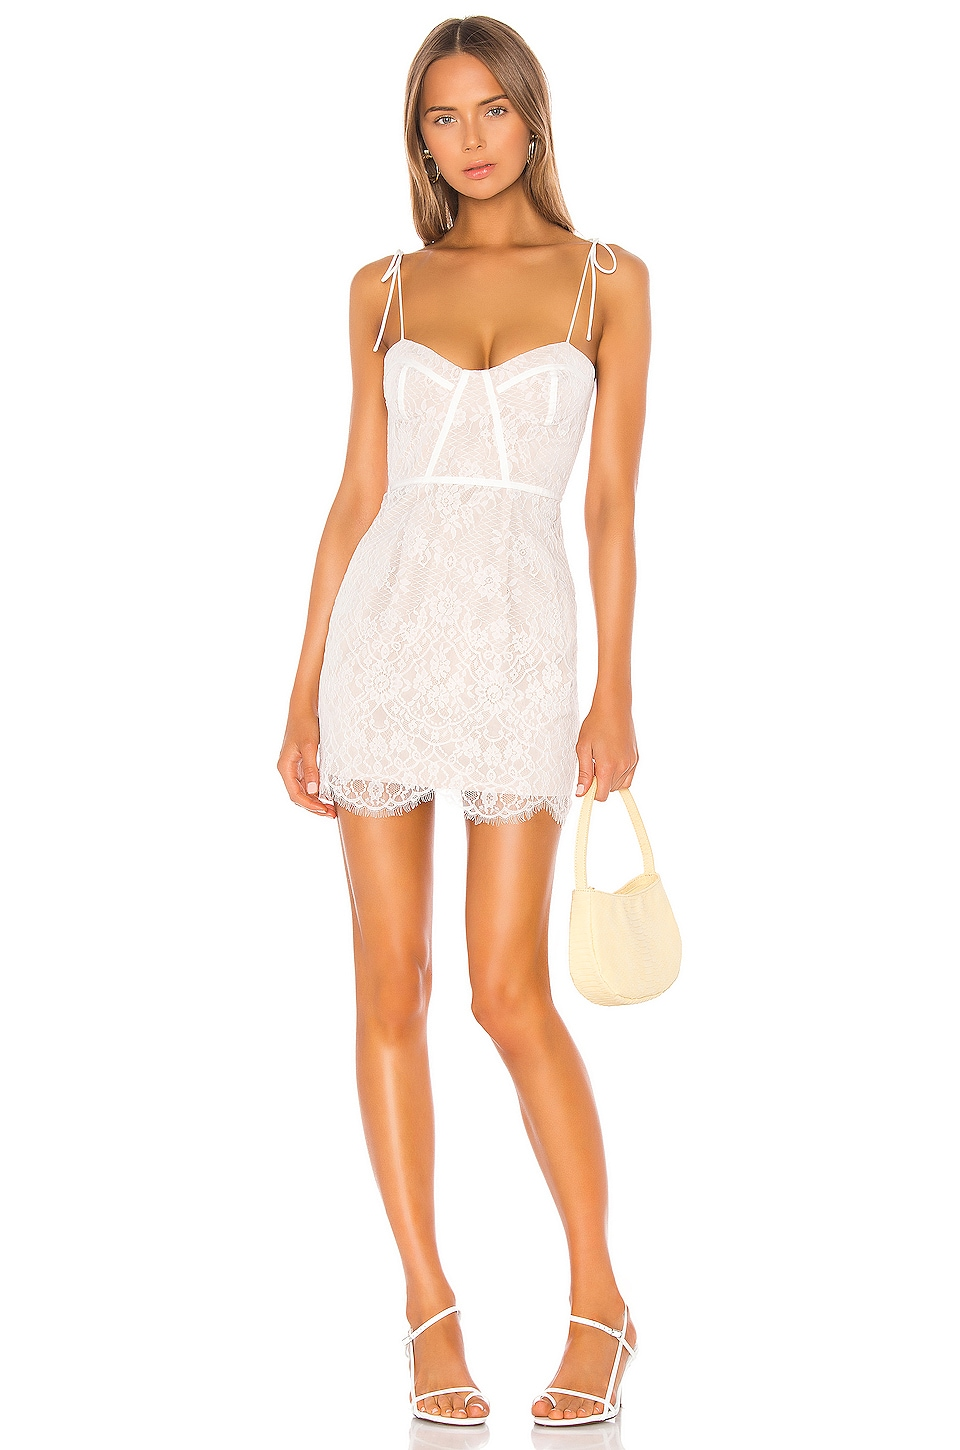 Lottie Lace Bustier Dress                   superdown                                                                                                                             CA$ 115.08 2